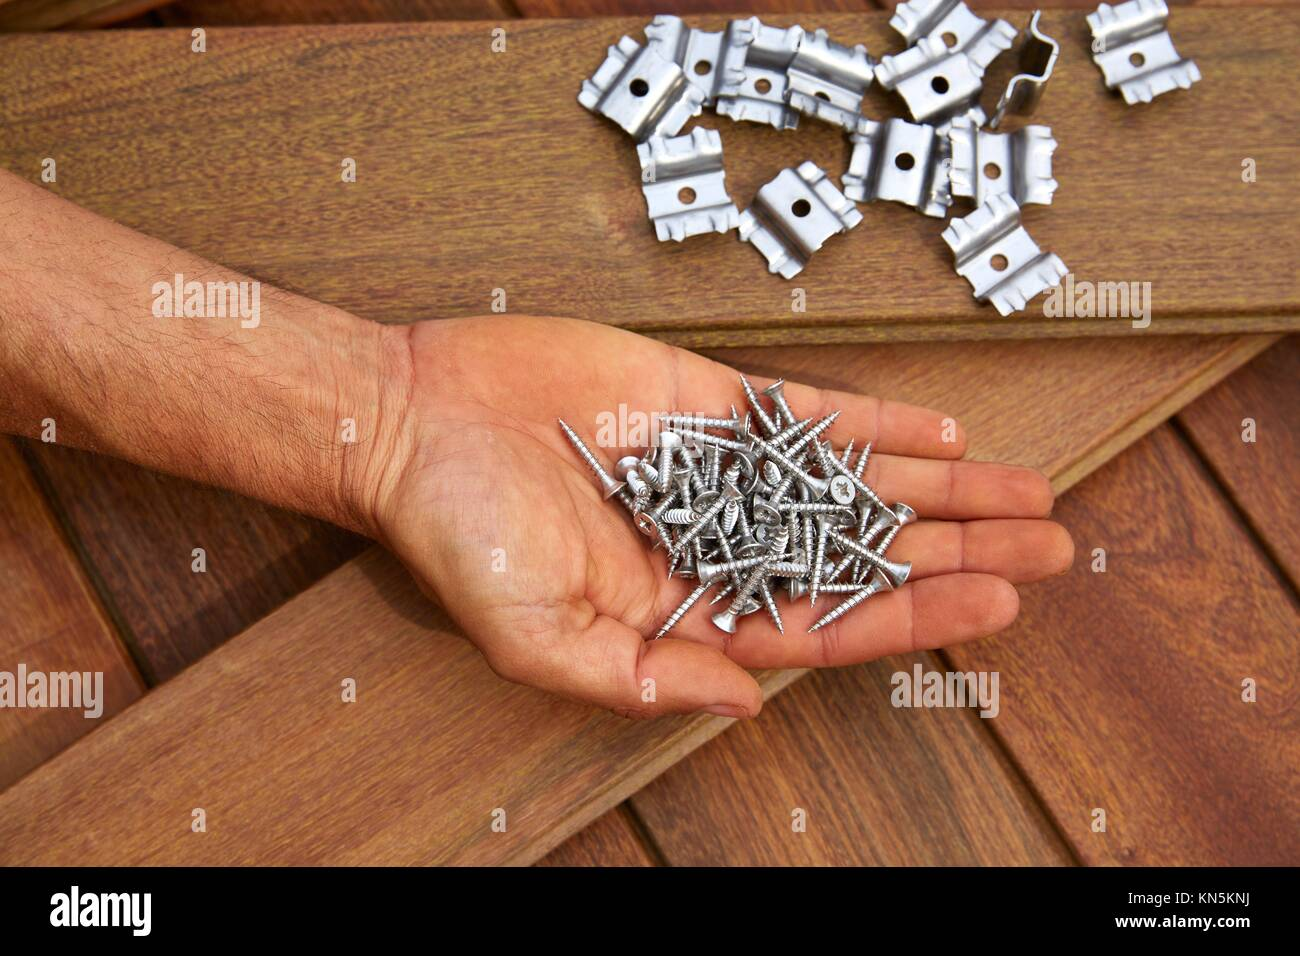 Ipe decking deck wood installation screws clips and fasteners. - Stock Image